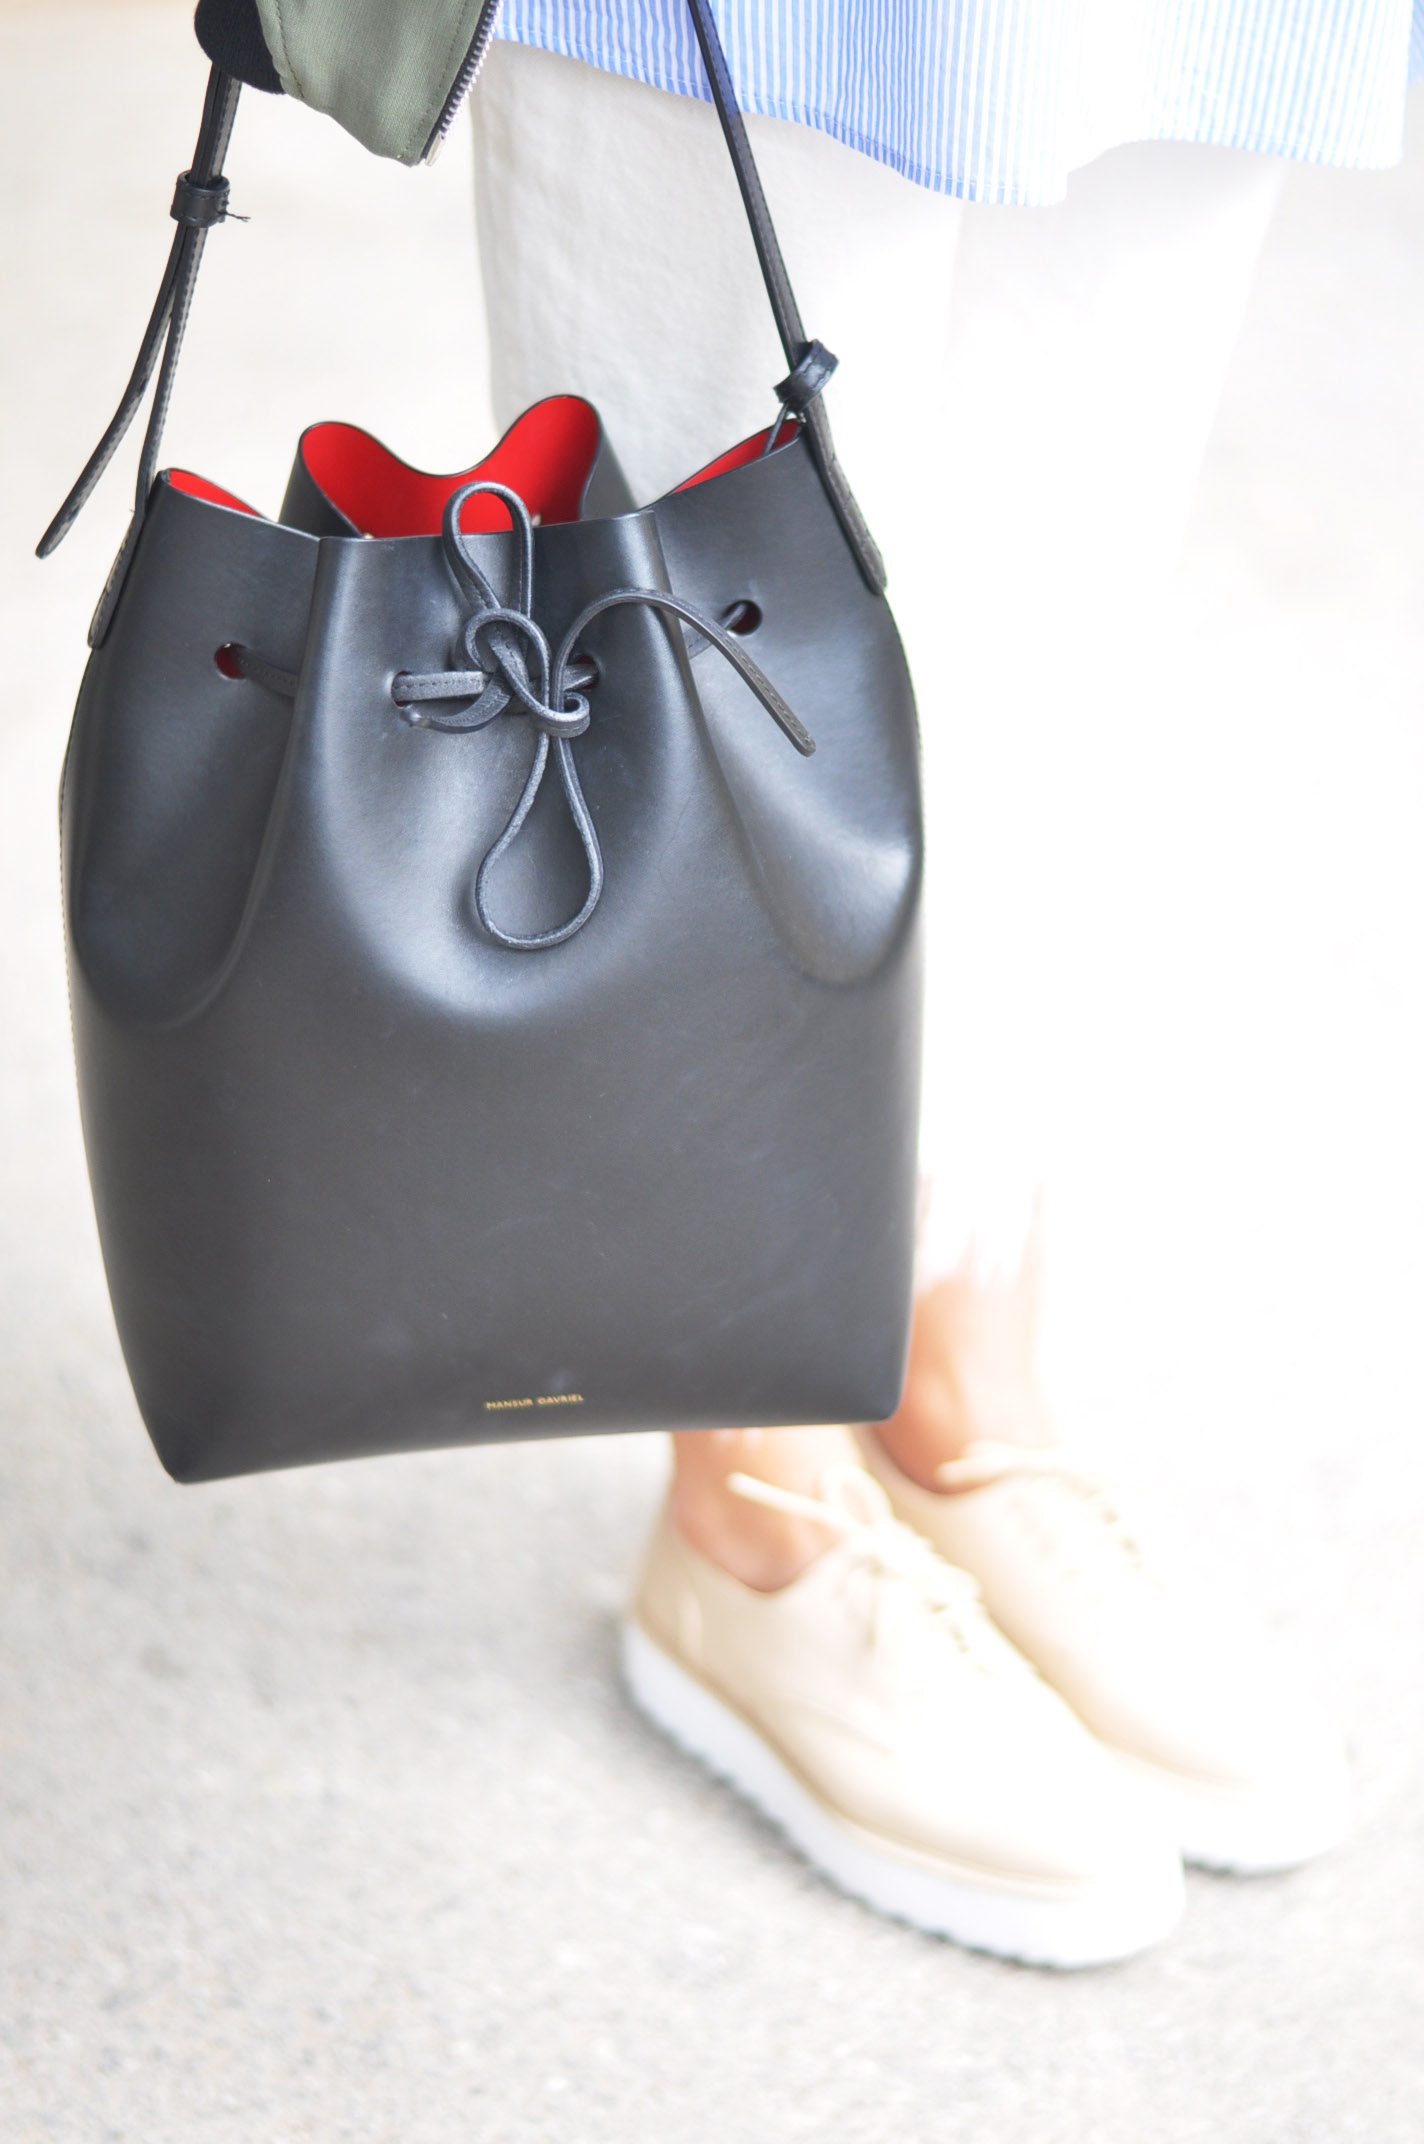 fashionnes-mansur-gavriel-bucket-bag